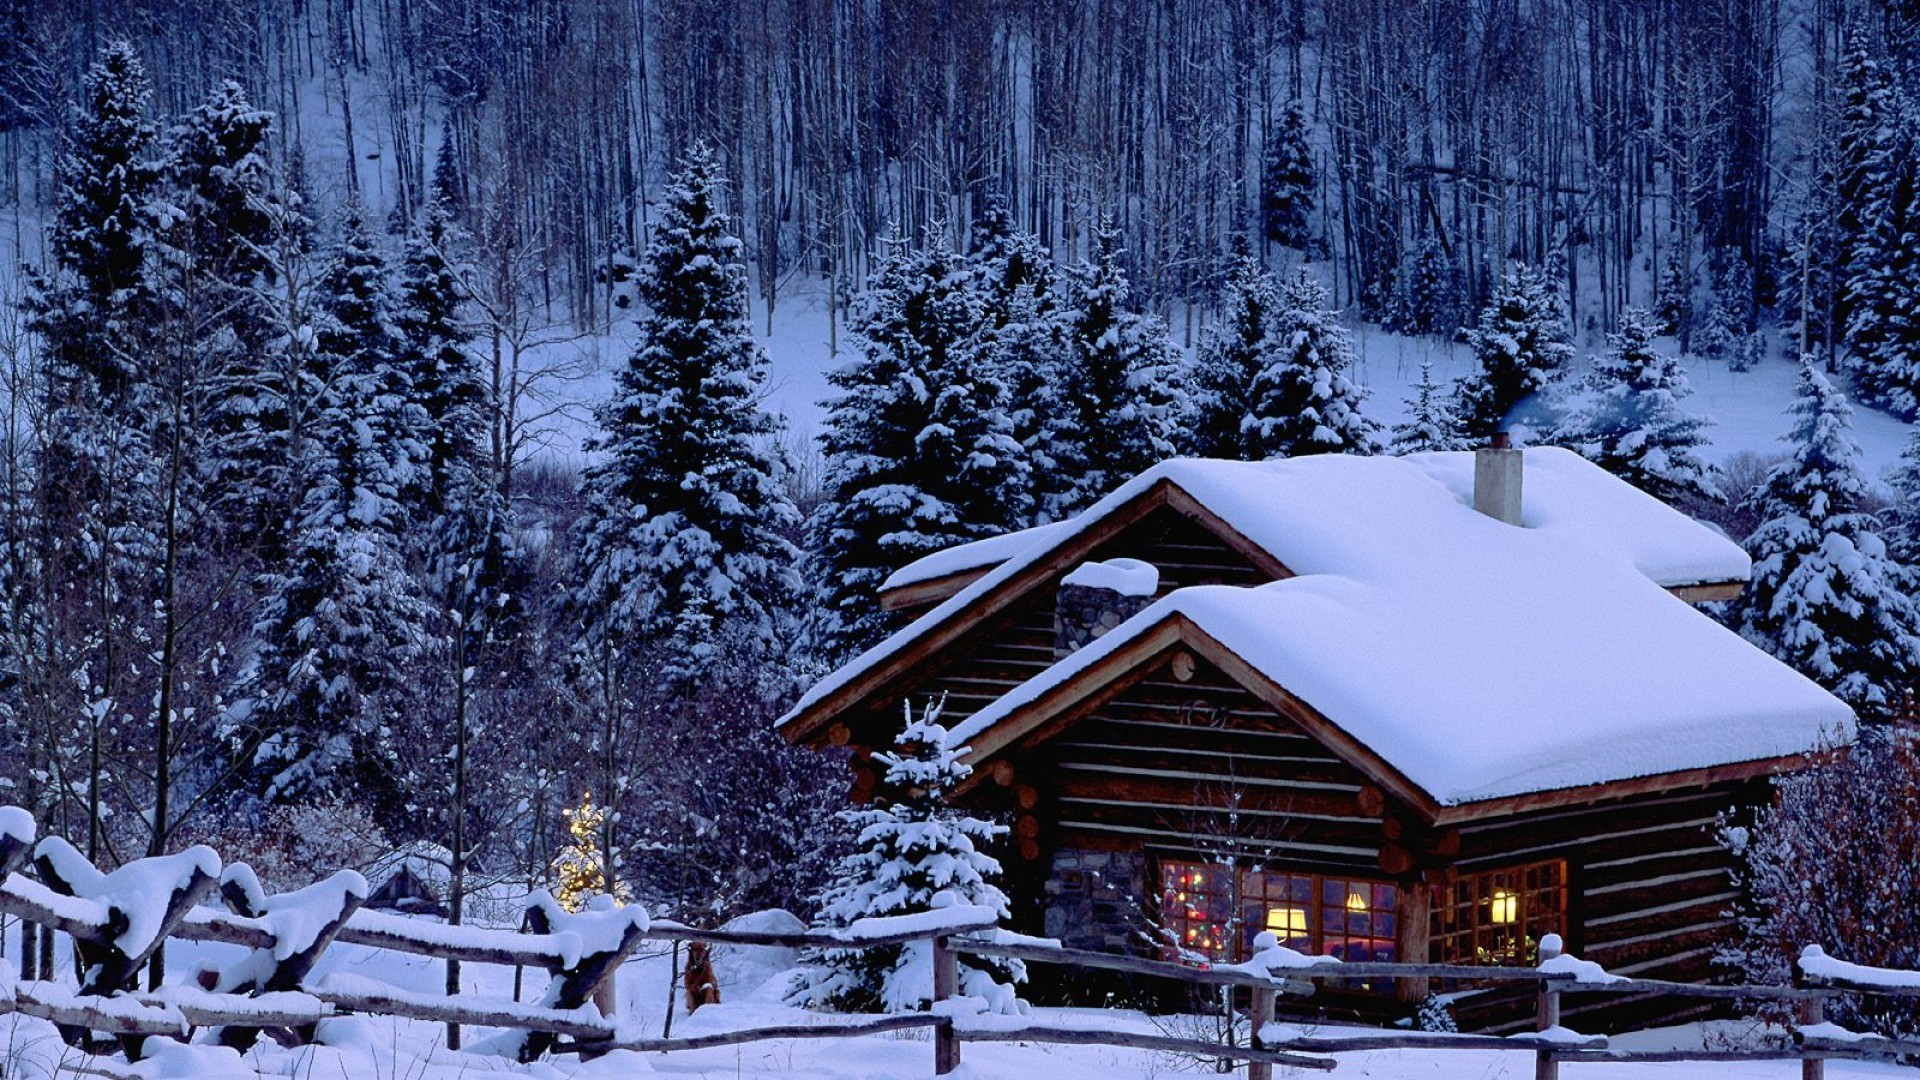 Christmas Wallpapers Hd Widescreen   Wallpapers9